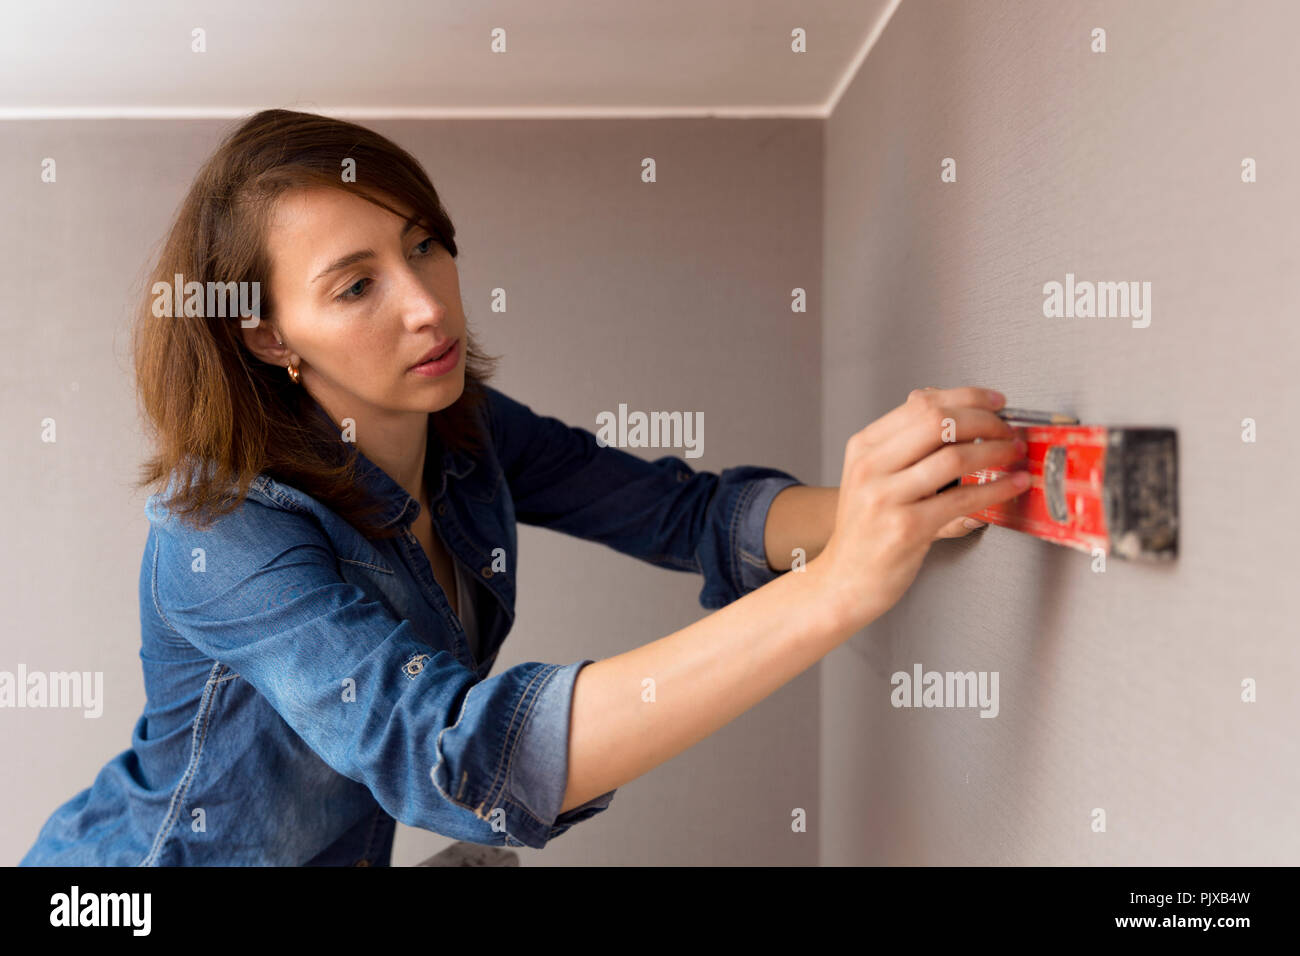 Home Improvement Beautiful Women Making A Mark On Wall With Level